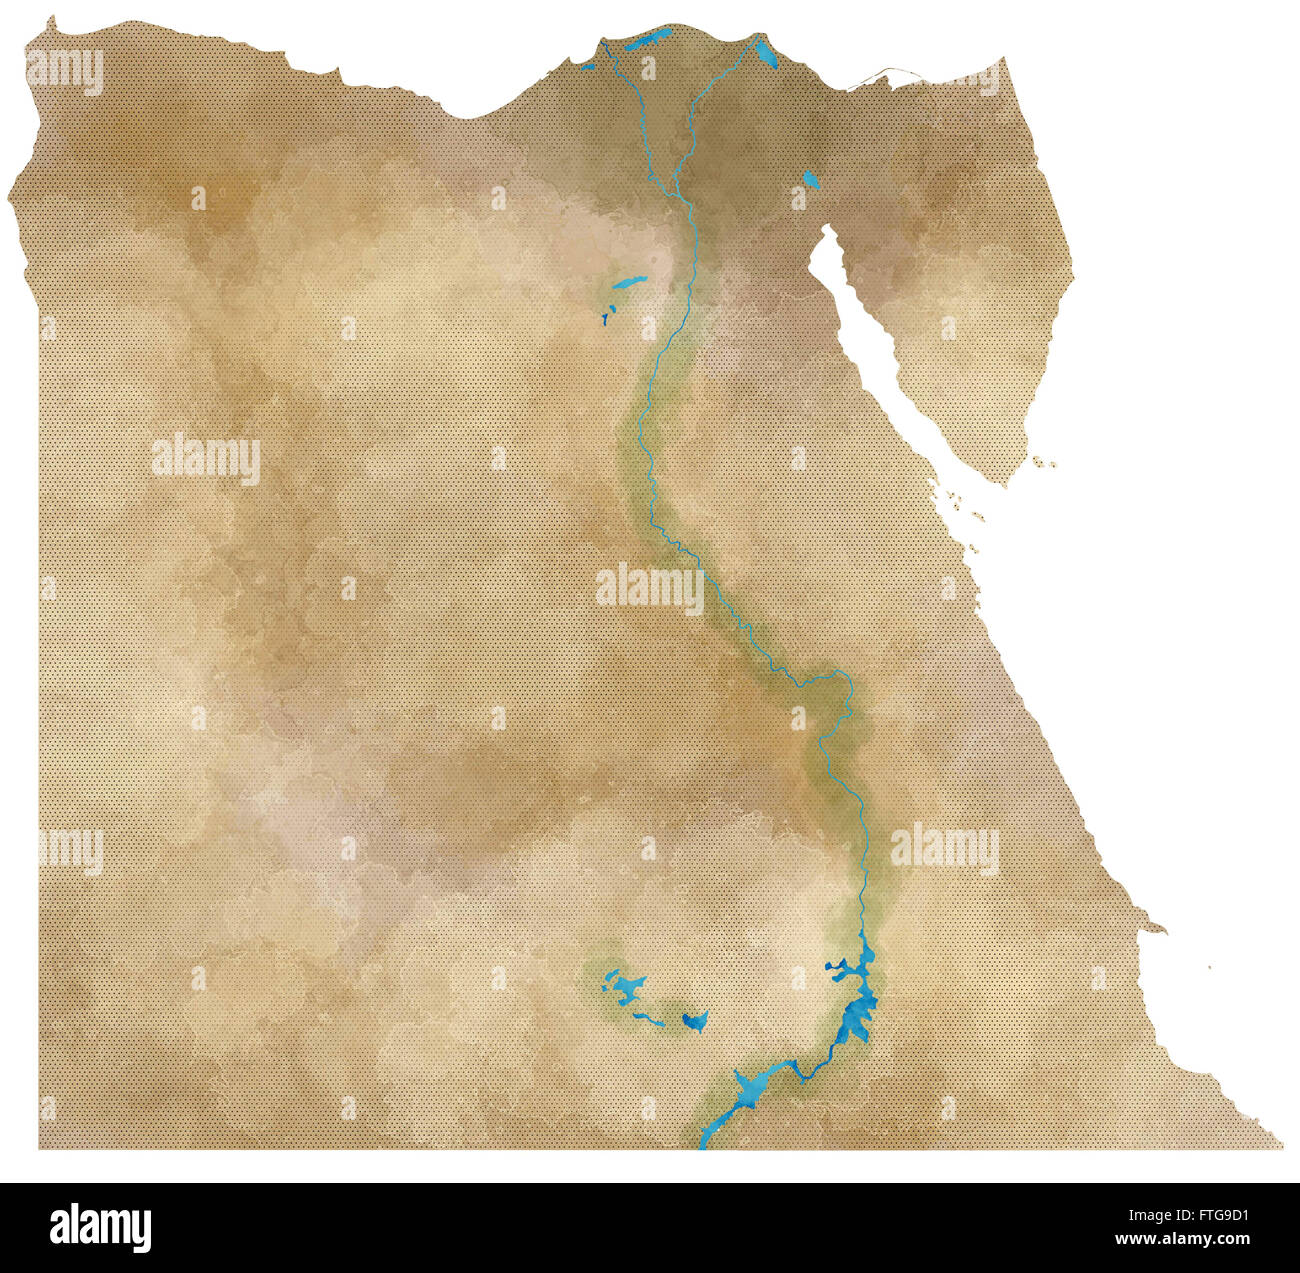 Egypt Map Physical Map Hand Drawn Stock Photo Royalty Free - Egypt physical map